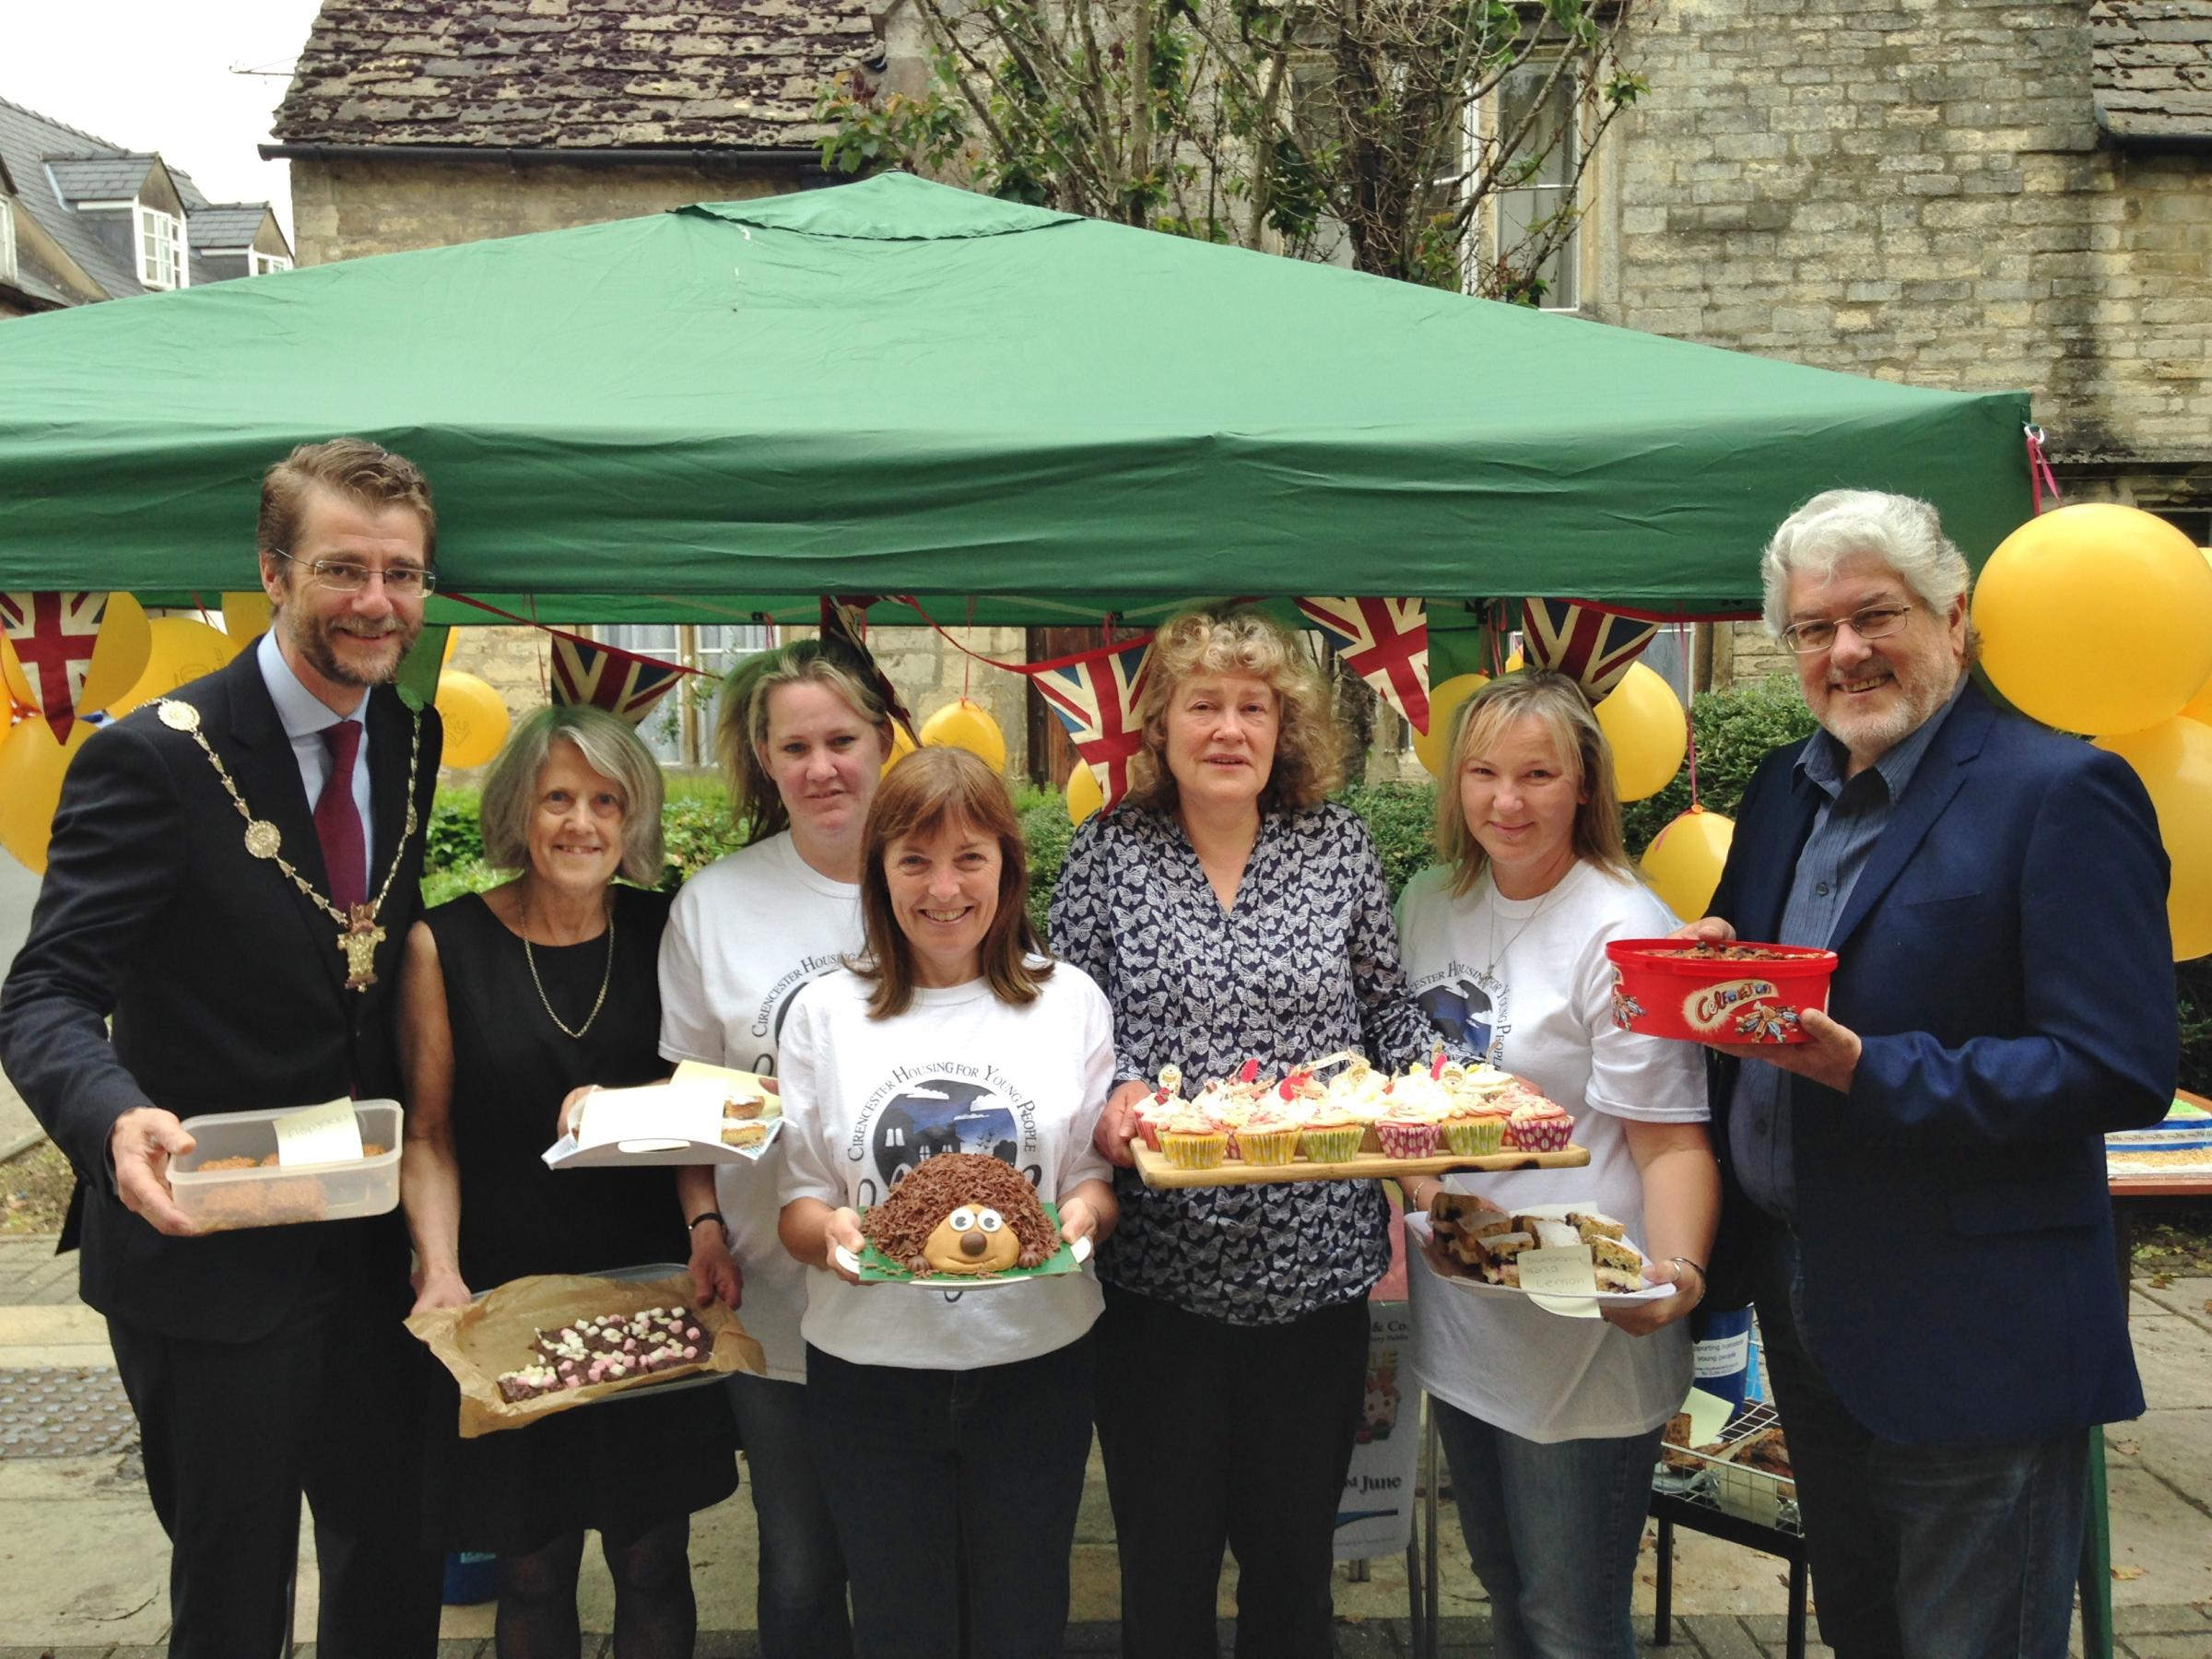 Cirencester mayor Mark Harris (left) with Alison Fielden (second left) and Andy Johnson (right) with volunteers from CHYP at the fundraising cake sale